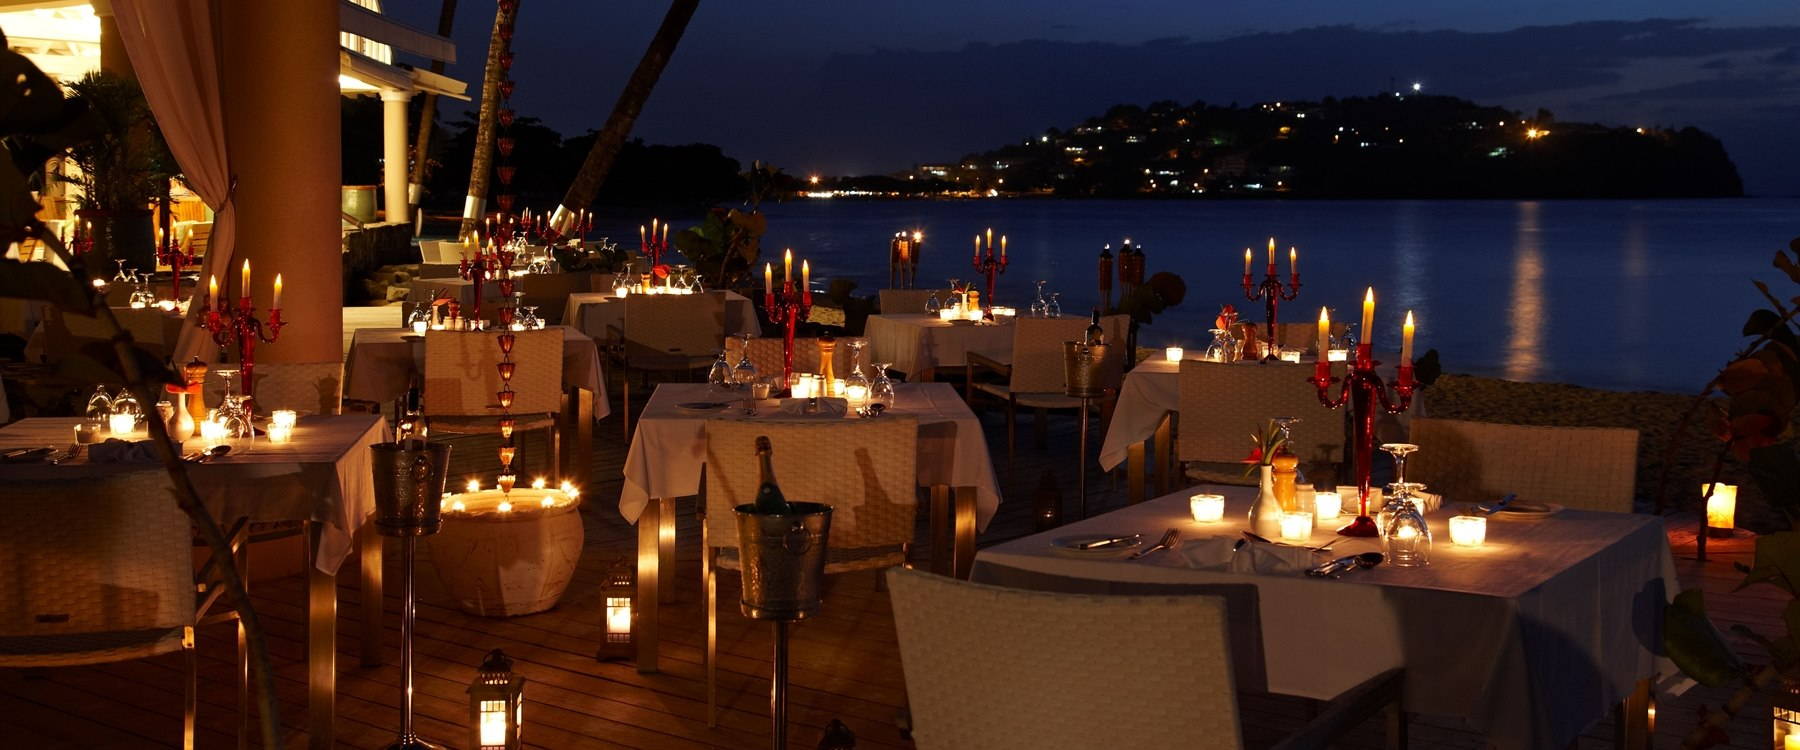 The Terrace Restaurant in the evening at Rendezvous, St Lucia